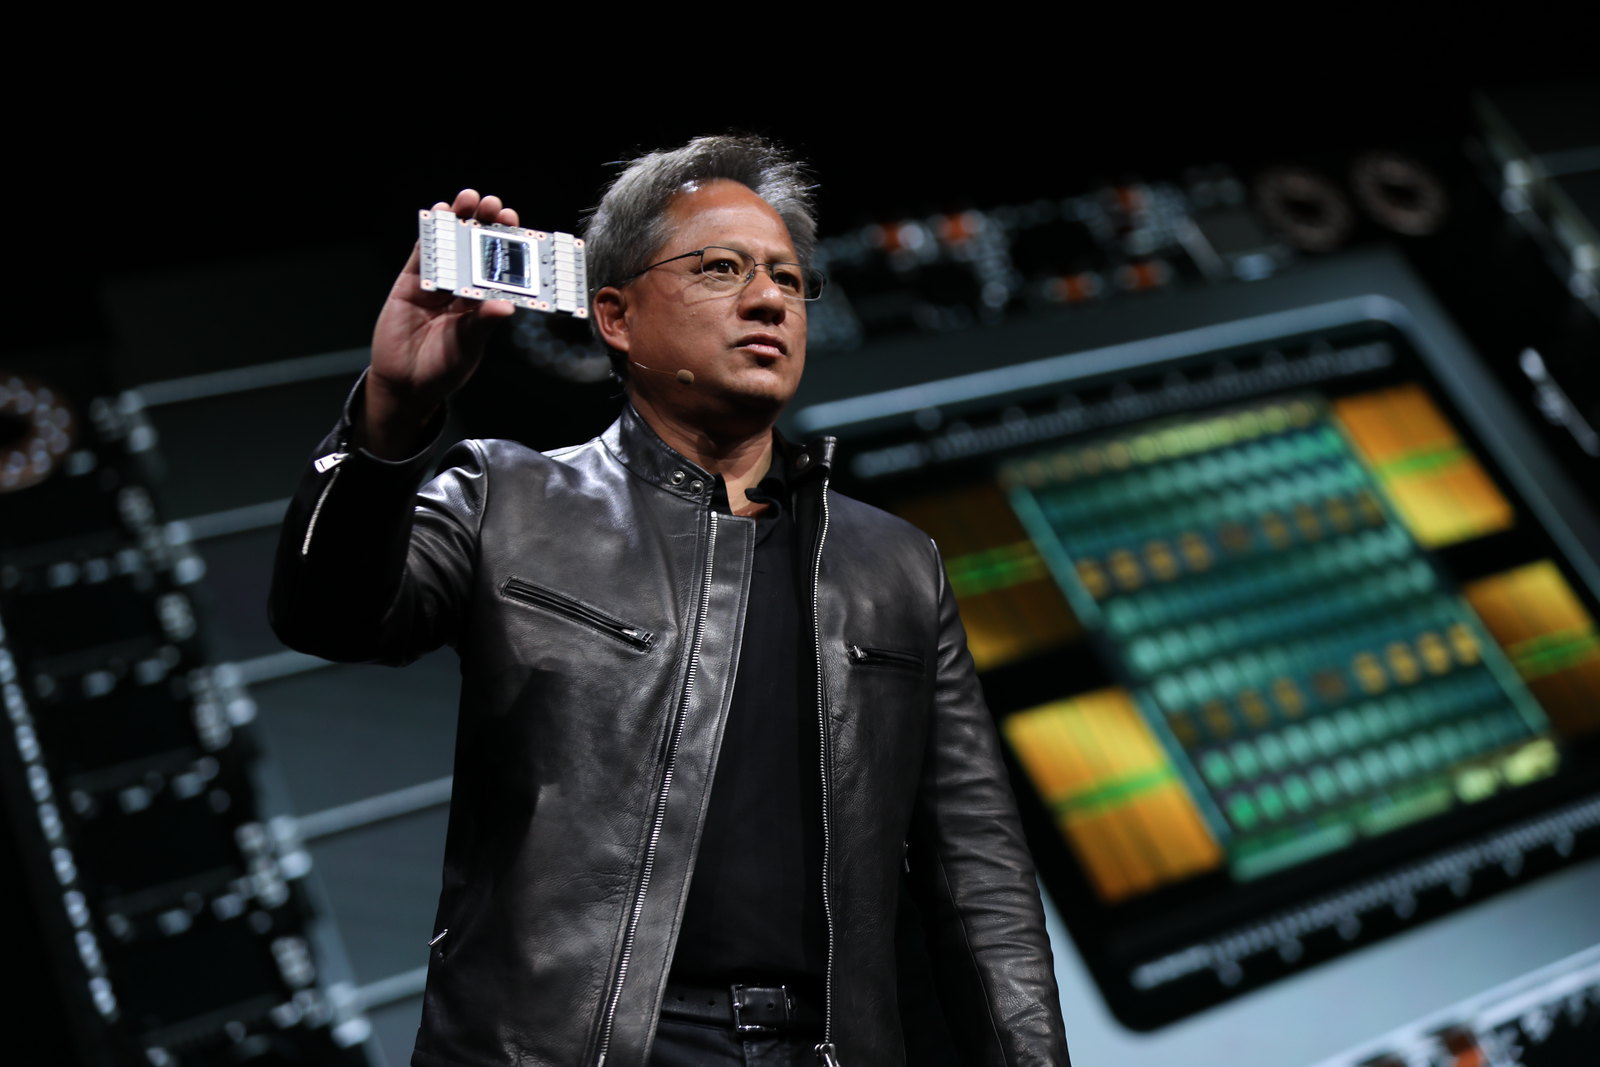 Nvidia tops earnings forecasts despite data center and gaming declines